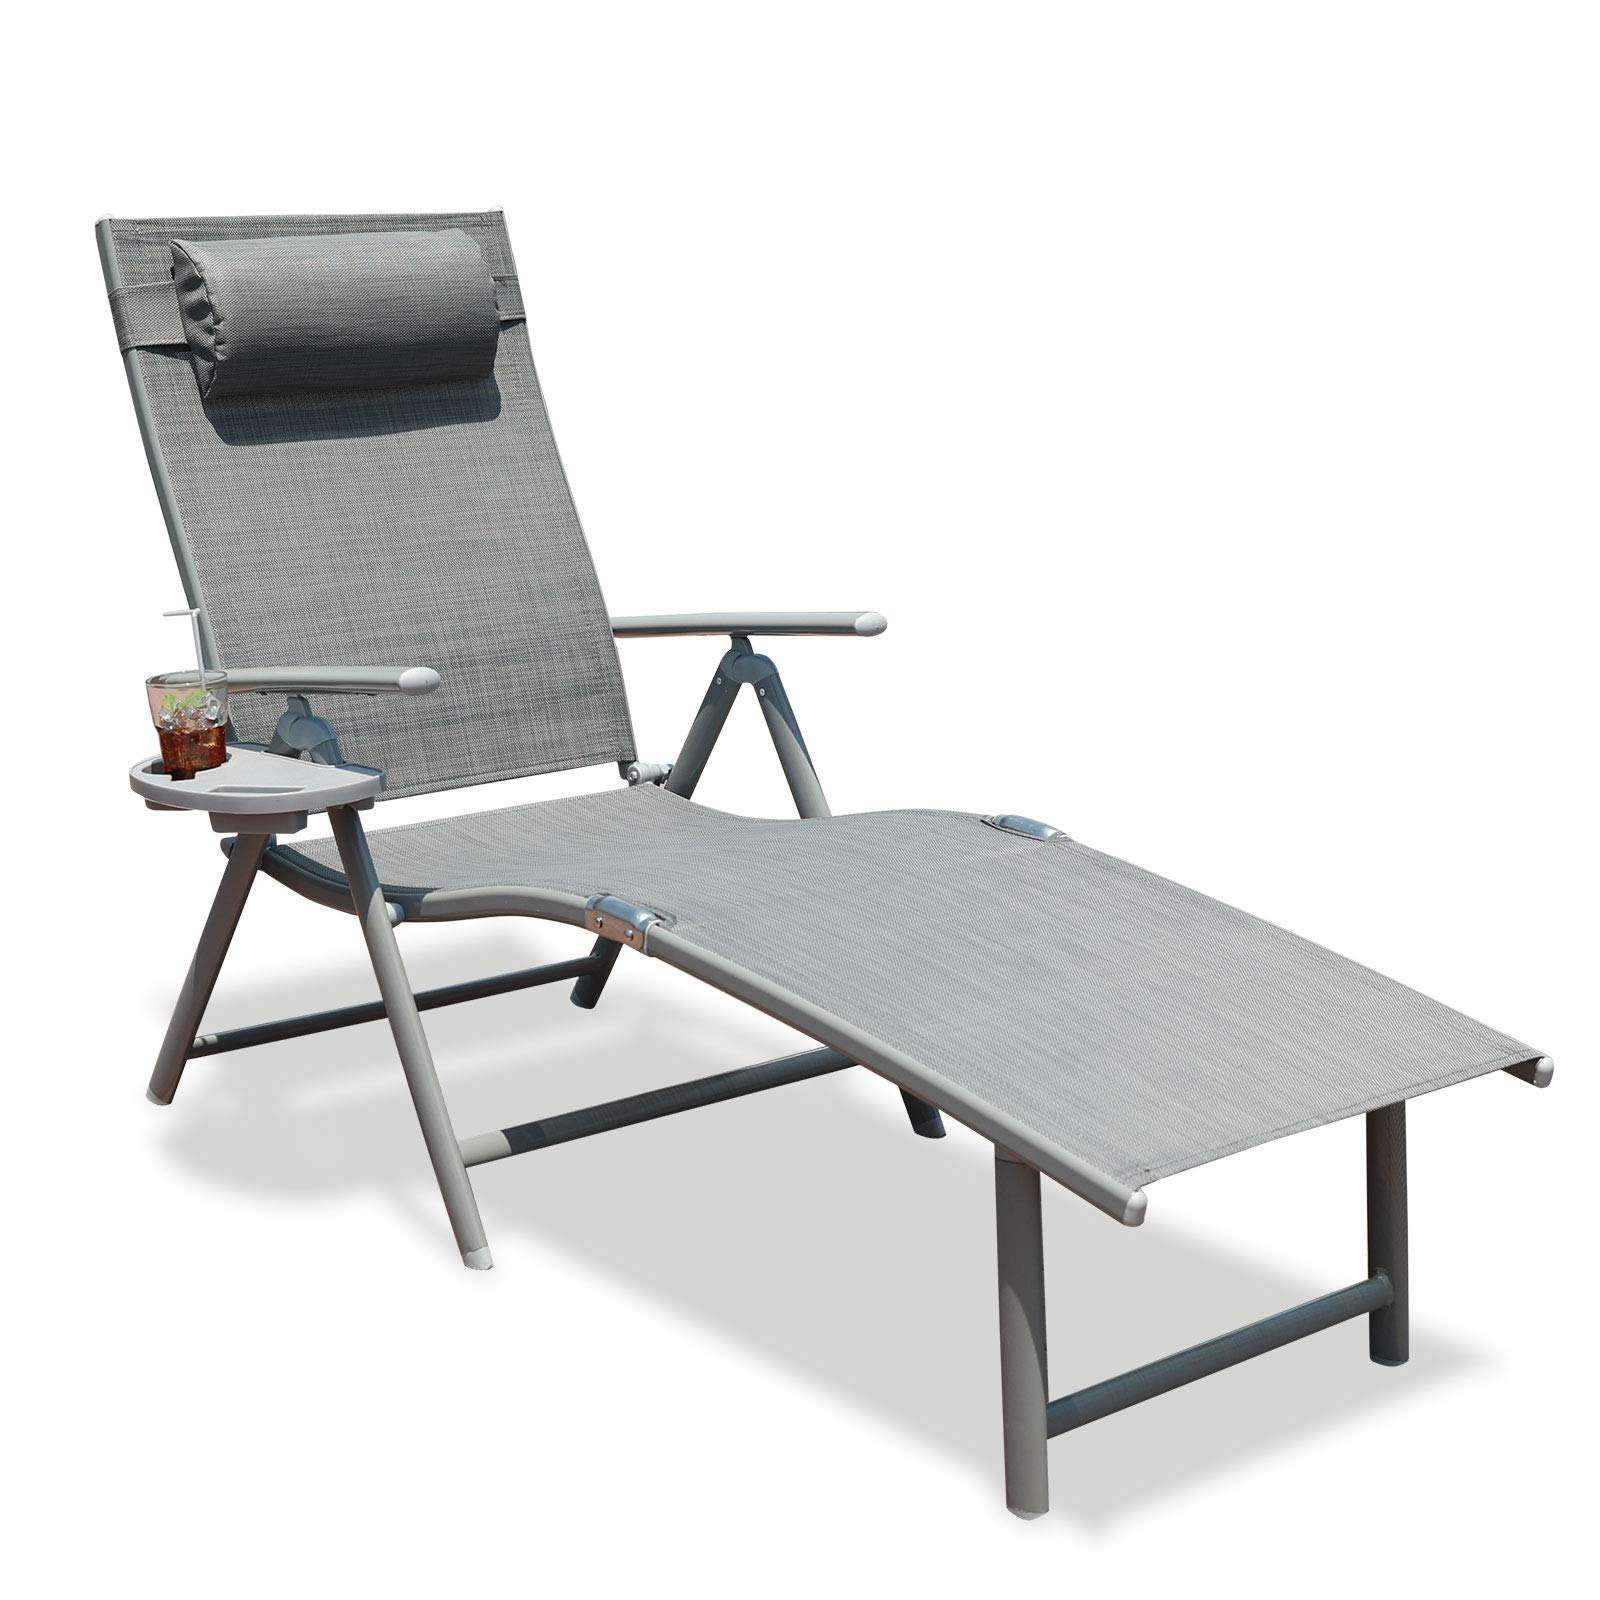 GOLDSUN Aluminum Outdoor Folding Reclining Adjustable Chaise Lounge Chair with Cup Holder for Outdoor Patio Beach Porch Swimming Pool (Single, Grey) by GOLDSUN